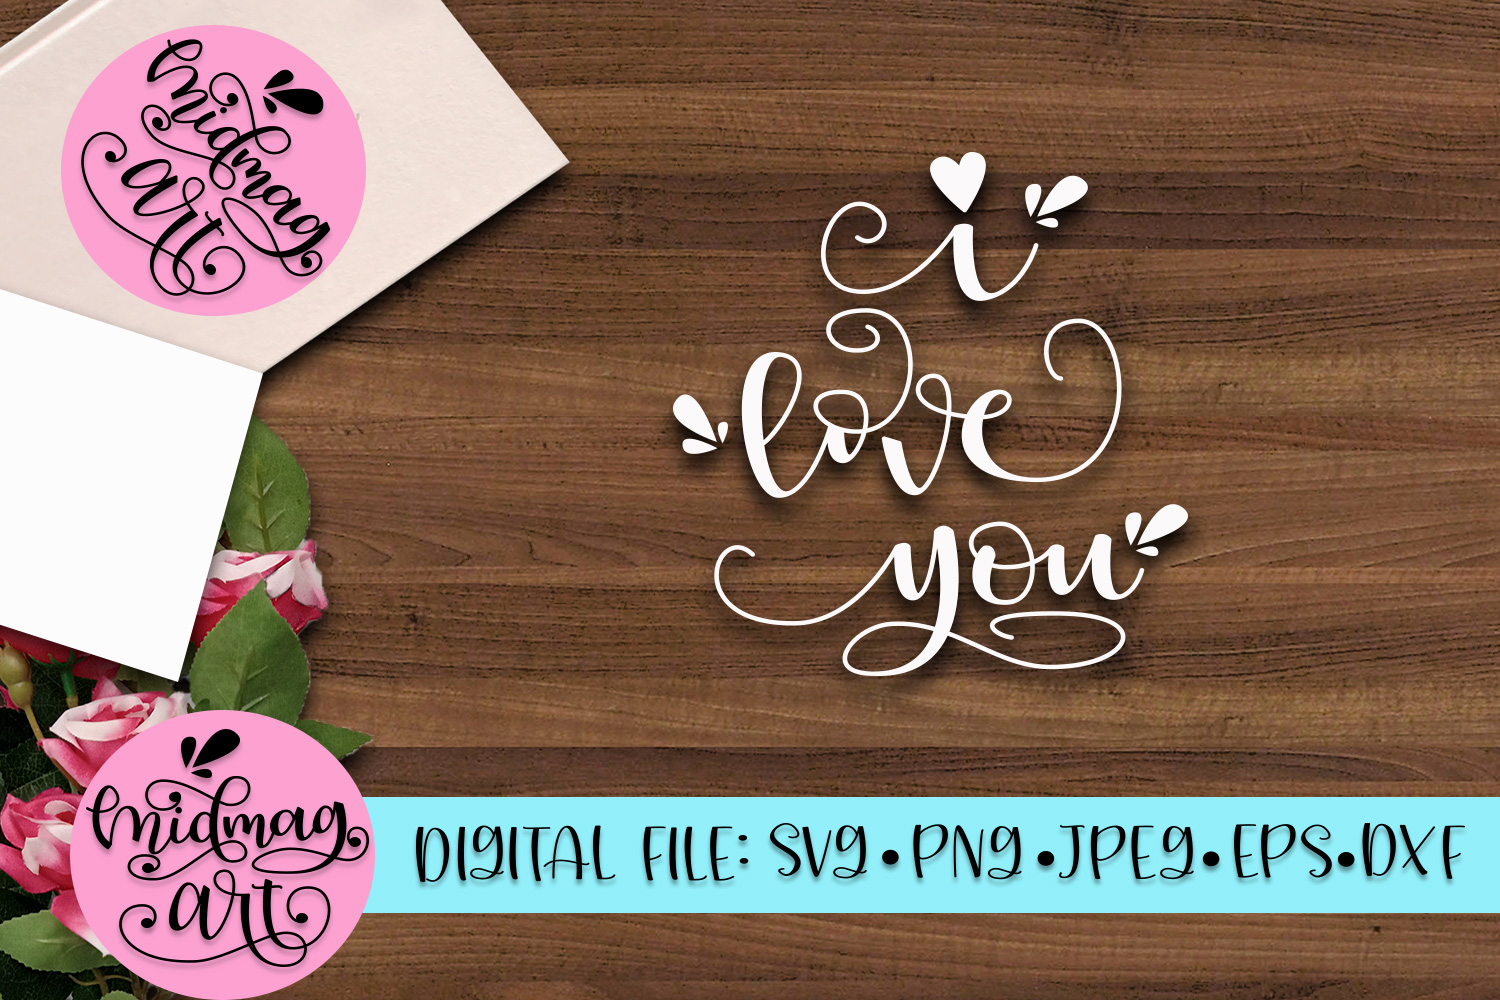 I love you svg, png, jpeg, eps and dxf example image 2